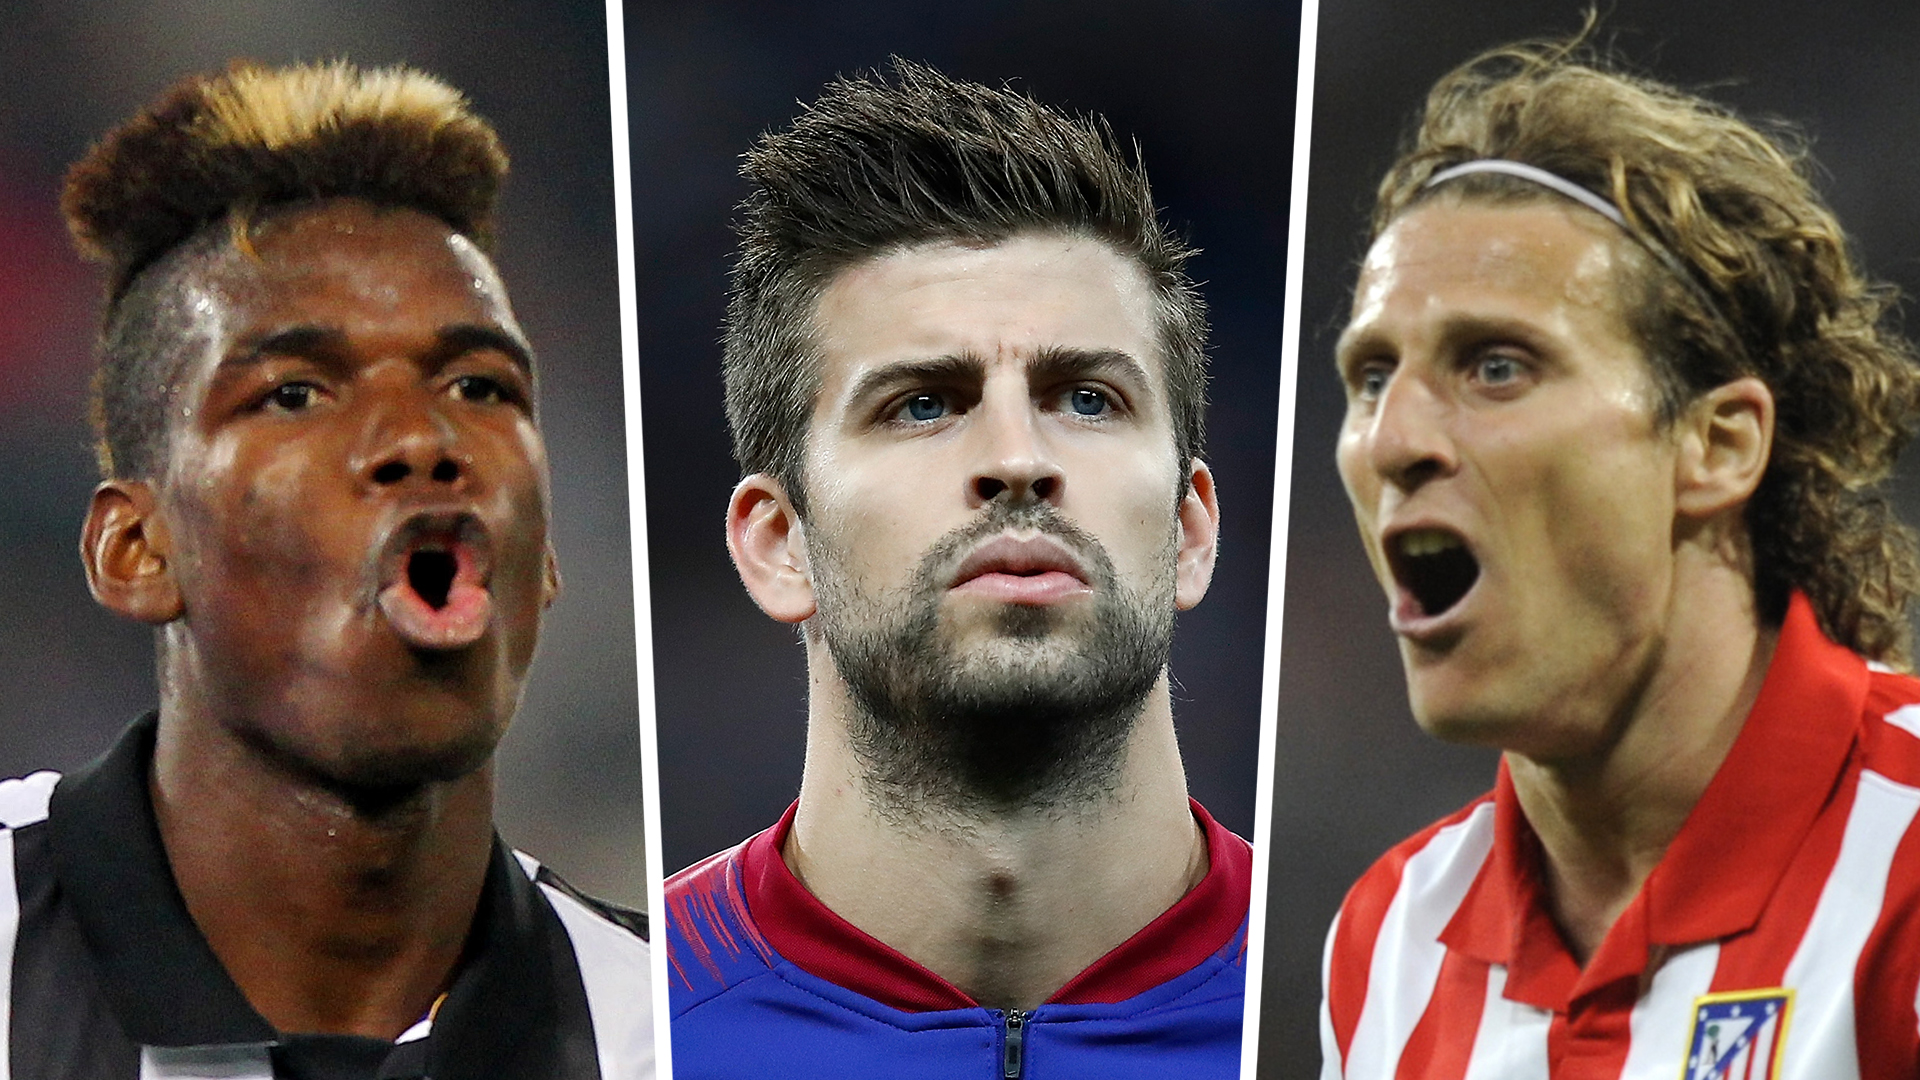 Pique, Pogba and the players who thrived after leaving Man Utd